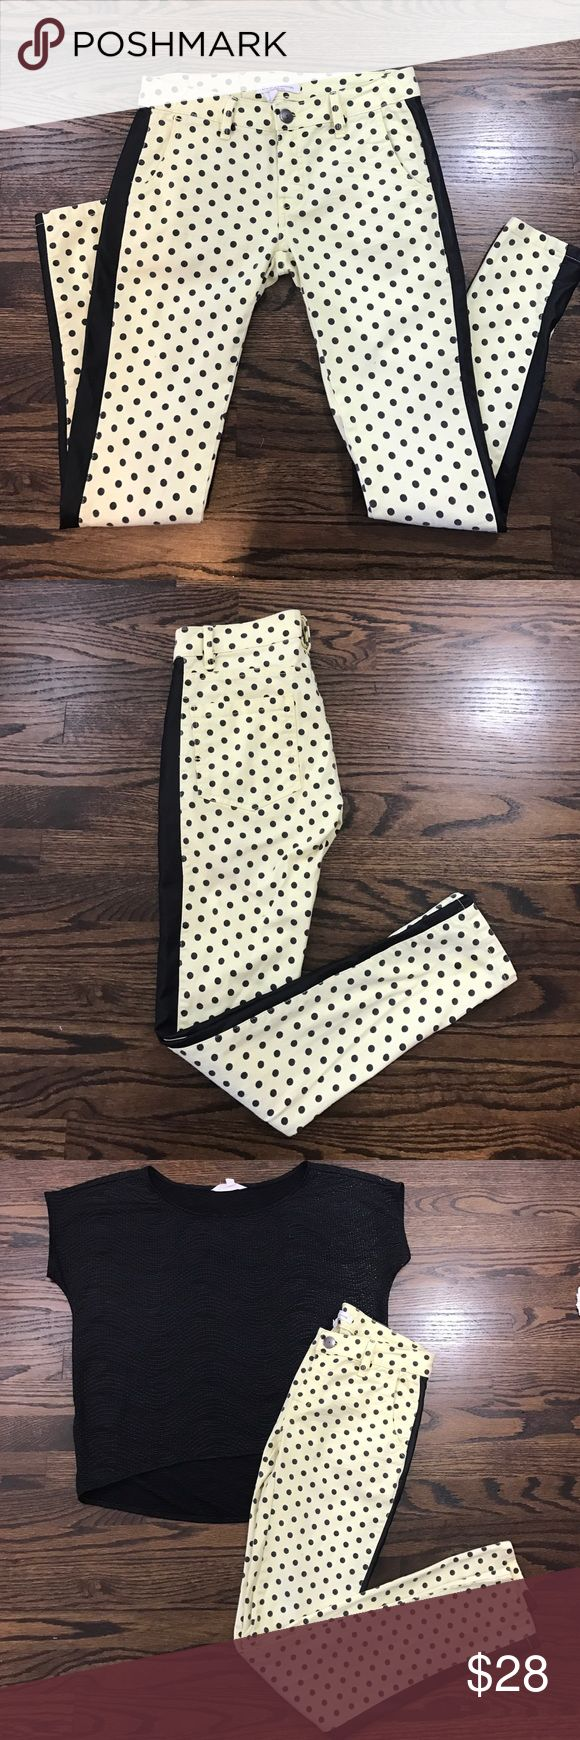 Yellow & Black Polka A Dot & Vegan Leather Jeans. Yellow & Black Polka A Dot & Vegan Leather Jeans.  Looks really cute with the black BCBGeneration top I'm also selling! BCBGeneration Pants Skinny